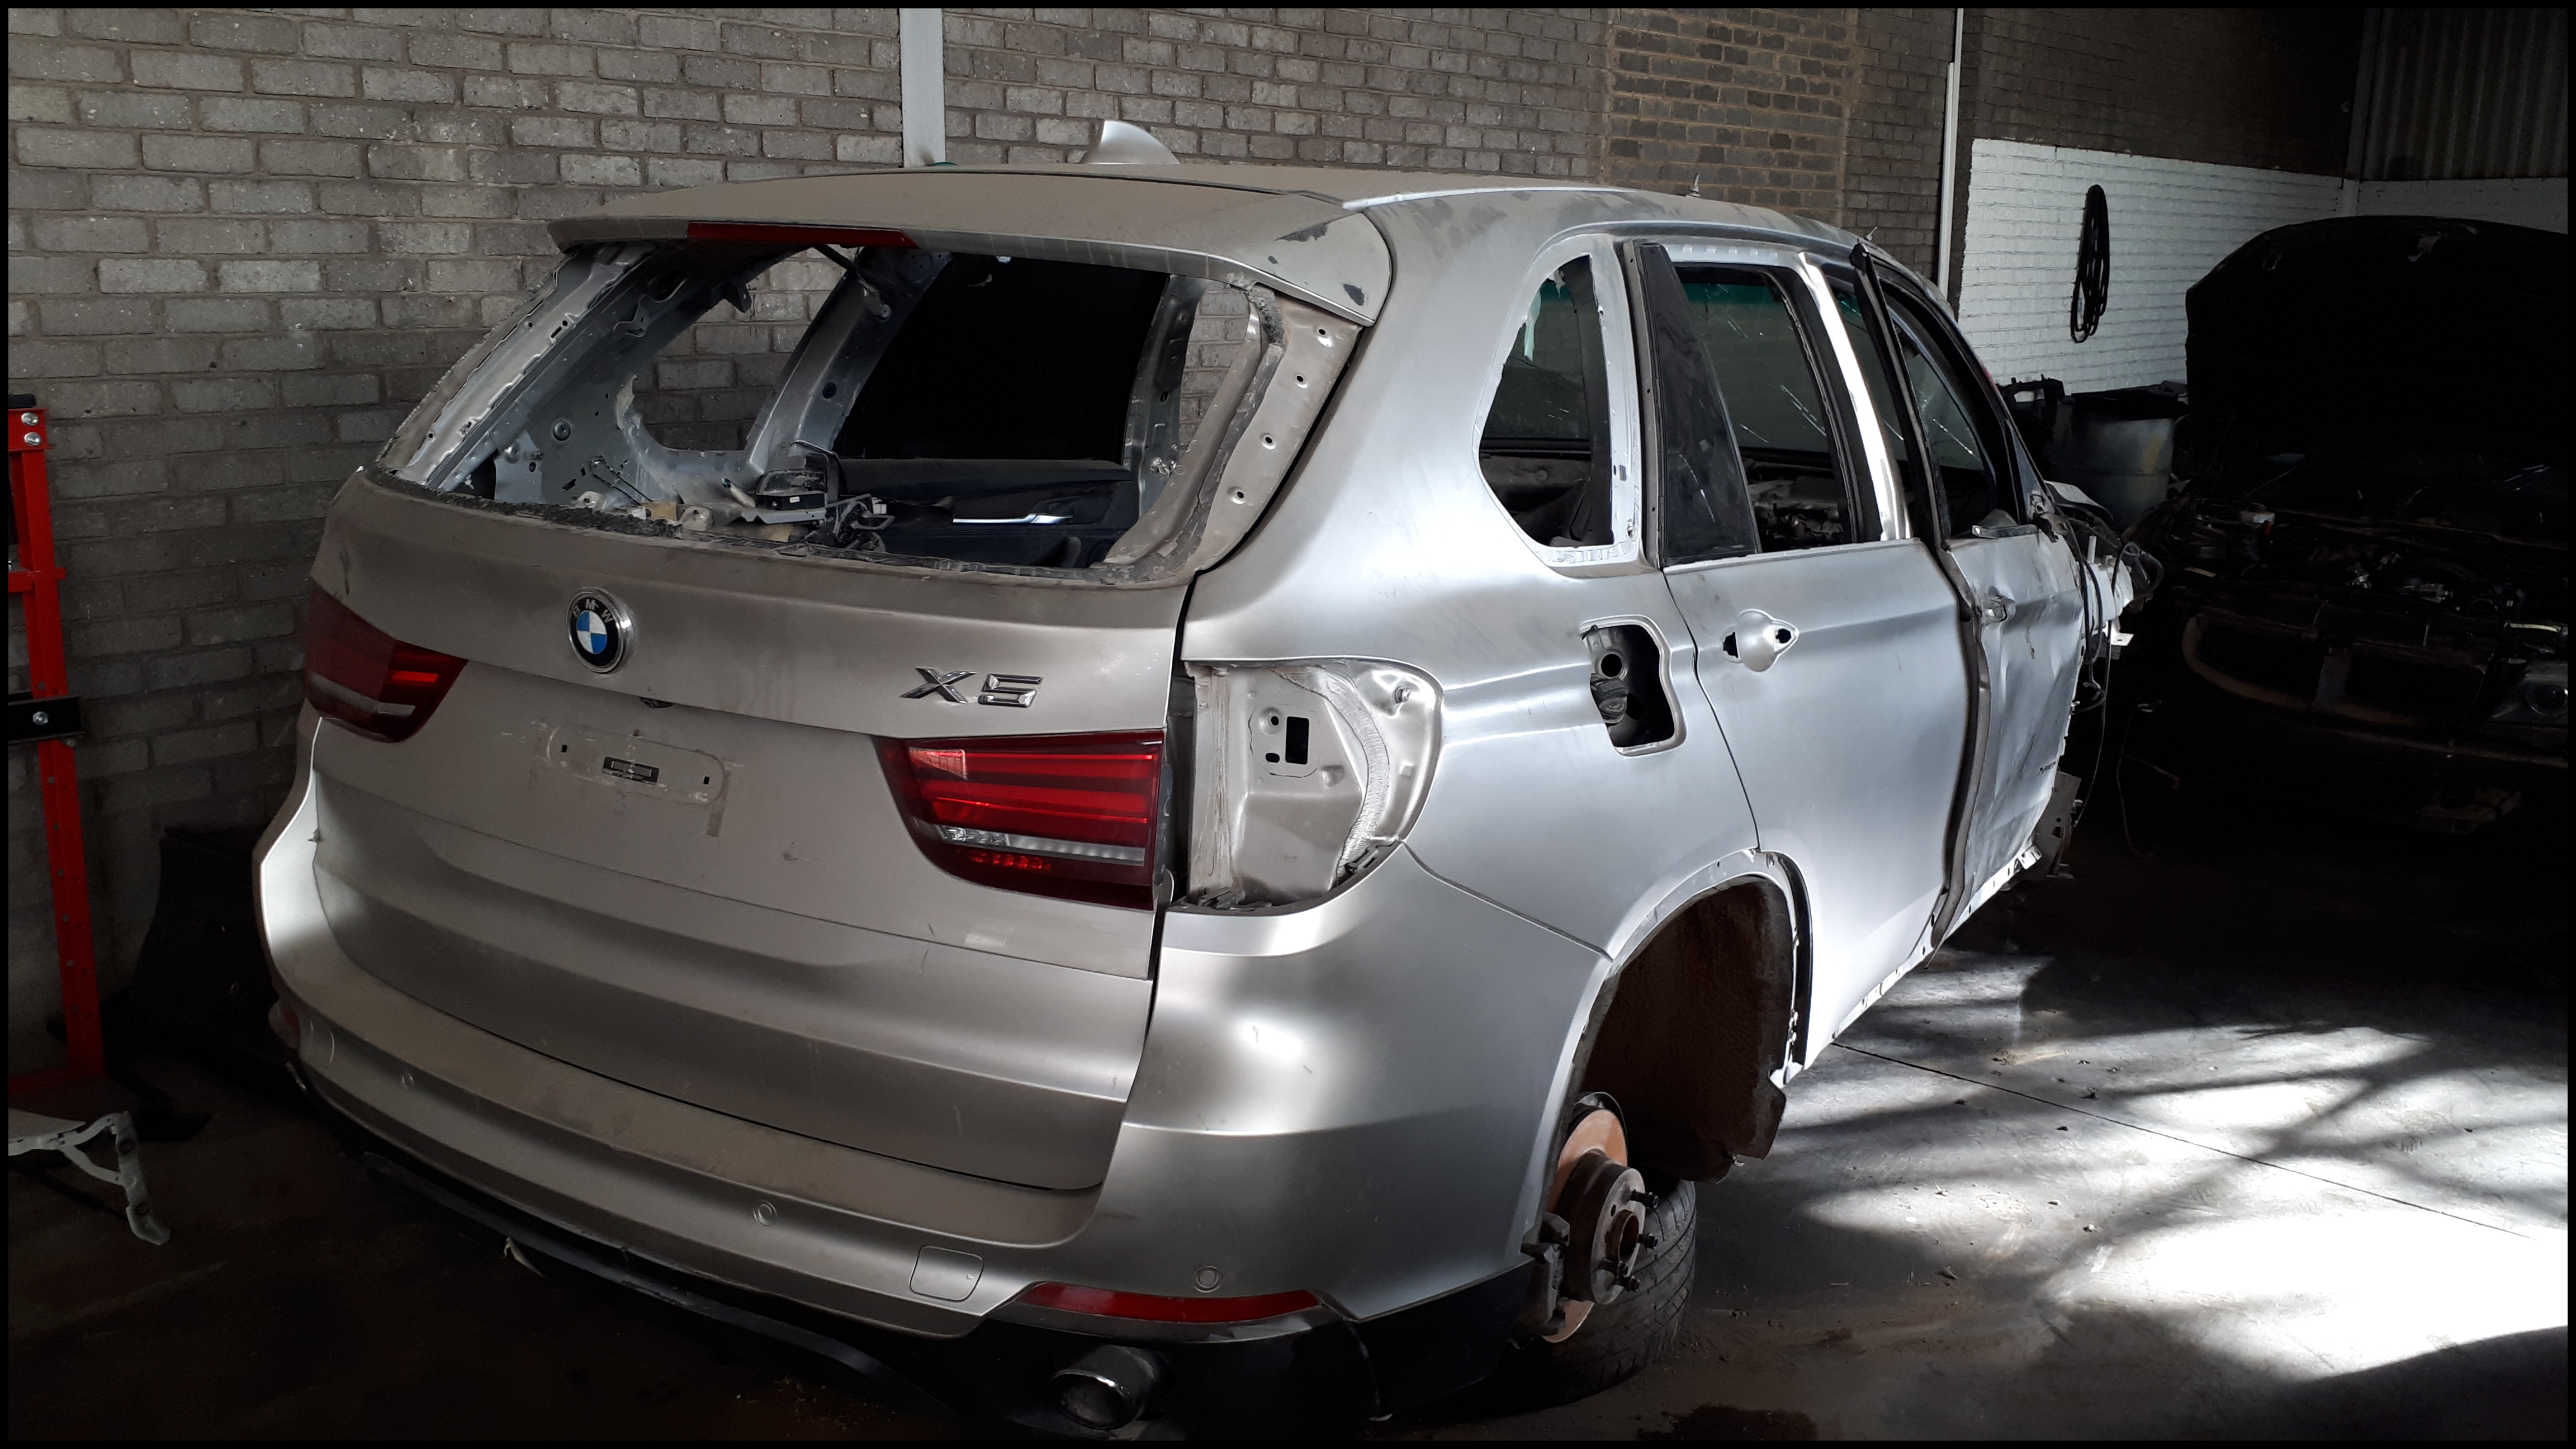 BMW F15 X5 3 0D Stripping for Parts